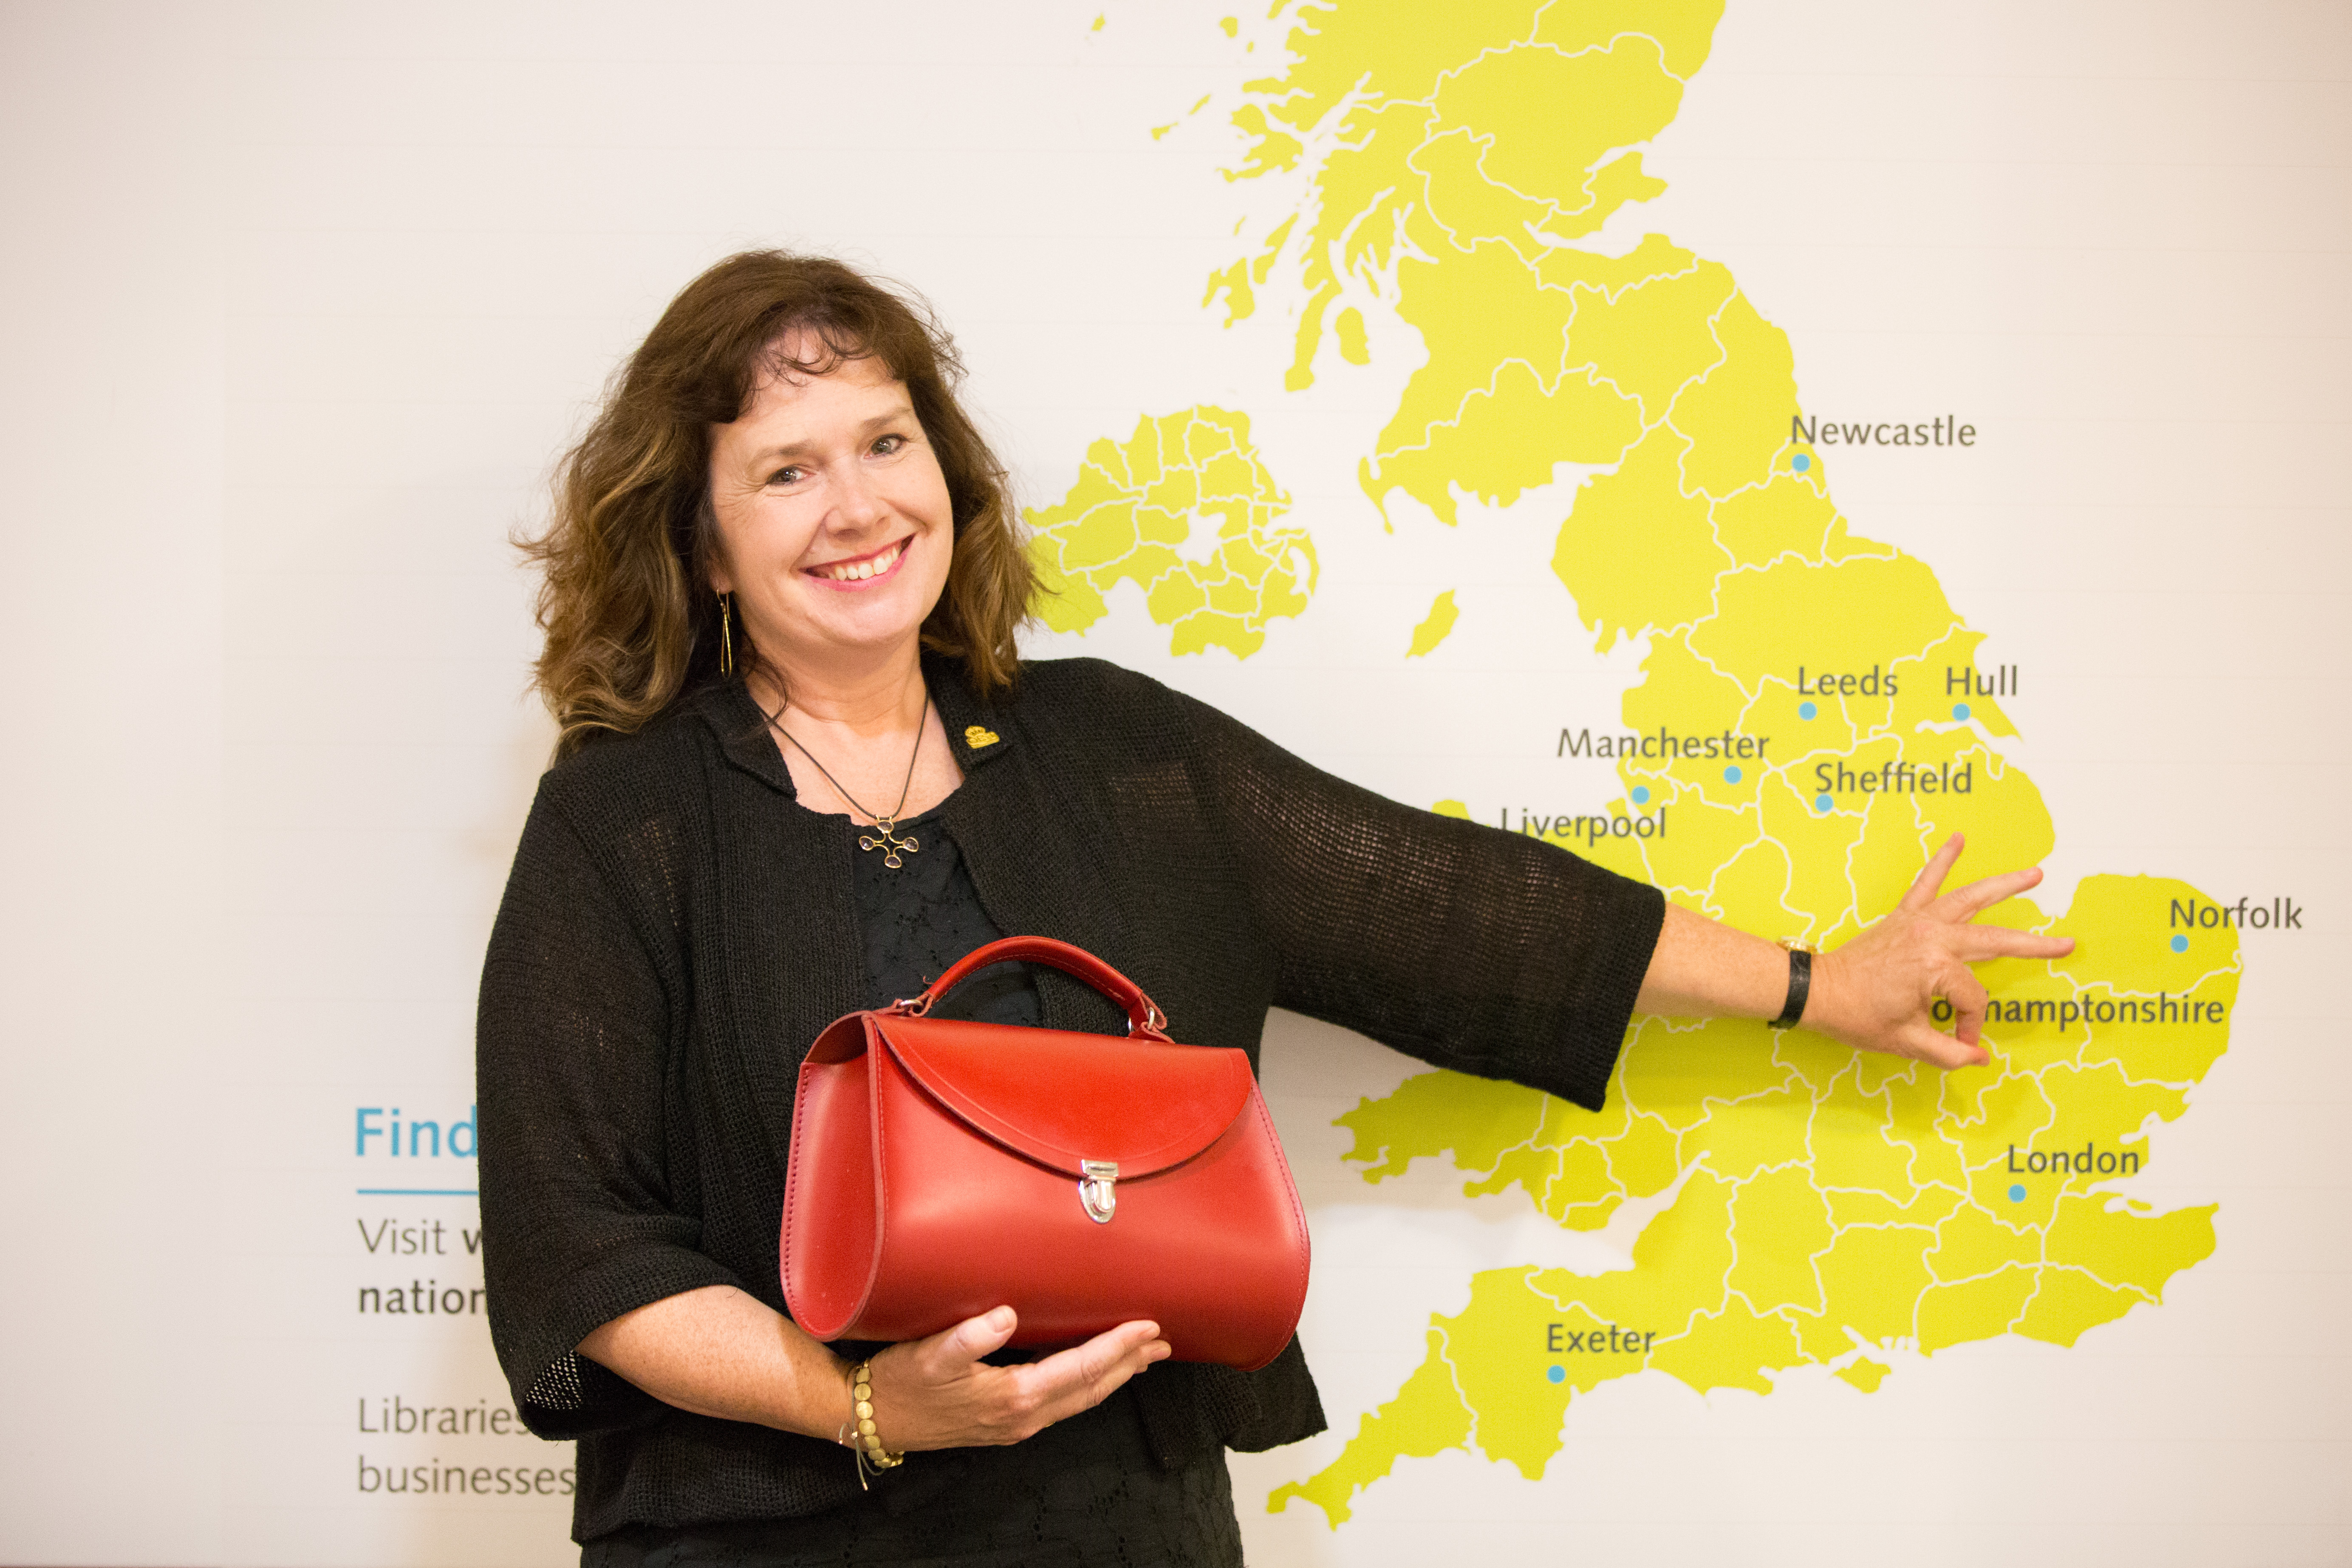 Julie Deane, Founder of the Cambridge Satchel Company and the British Library Business & IP Centre's Entrepreneur-in-Residence